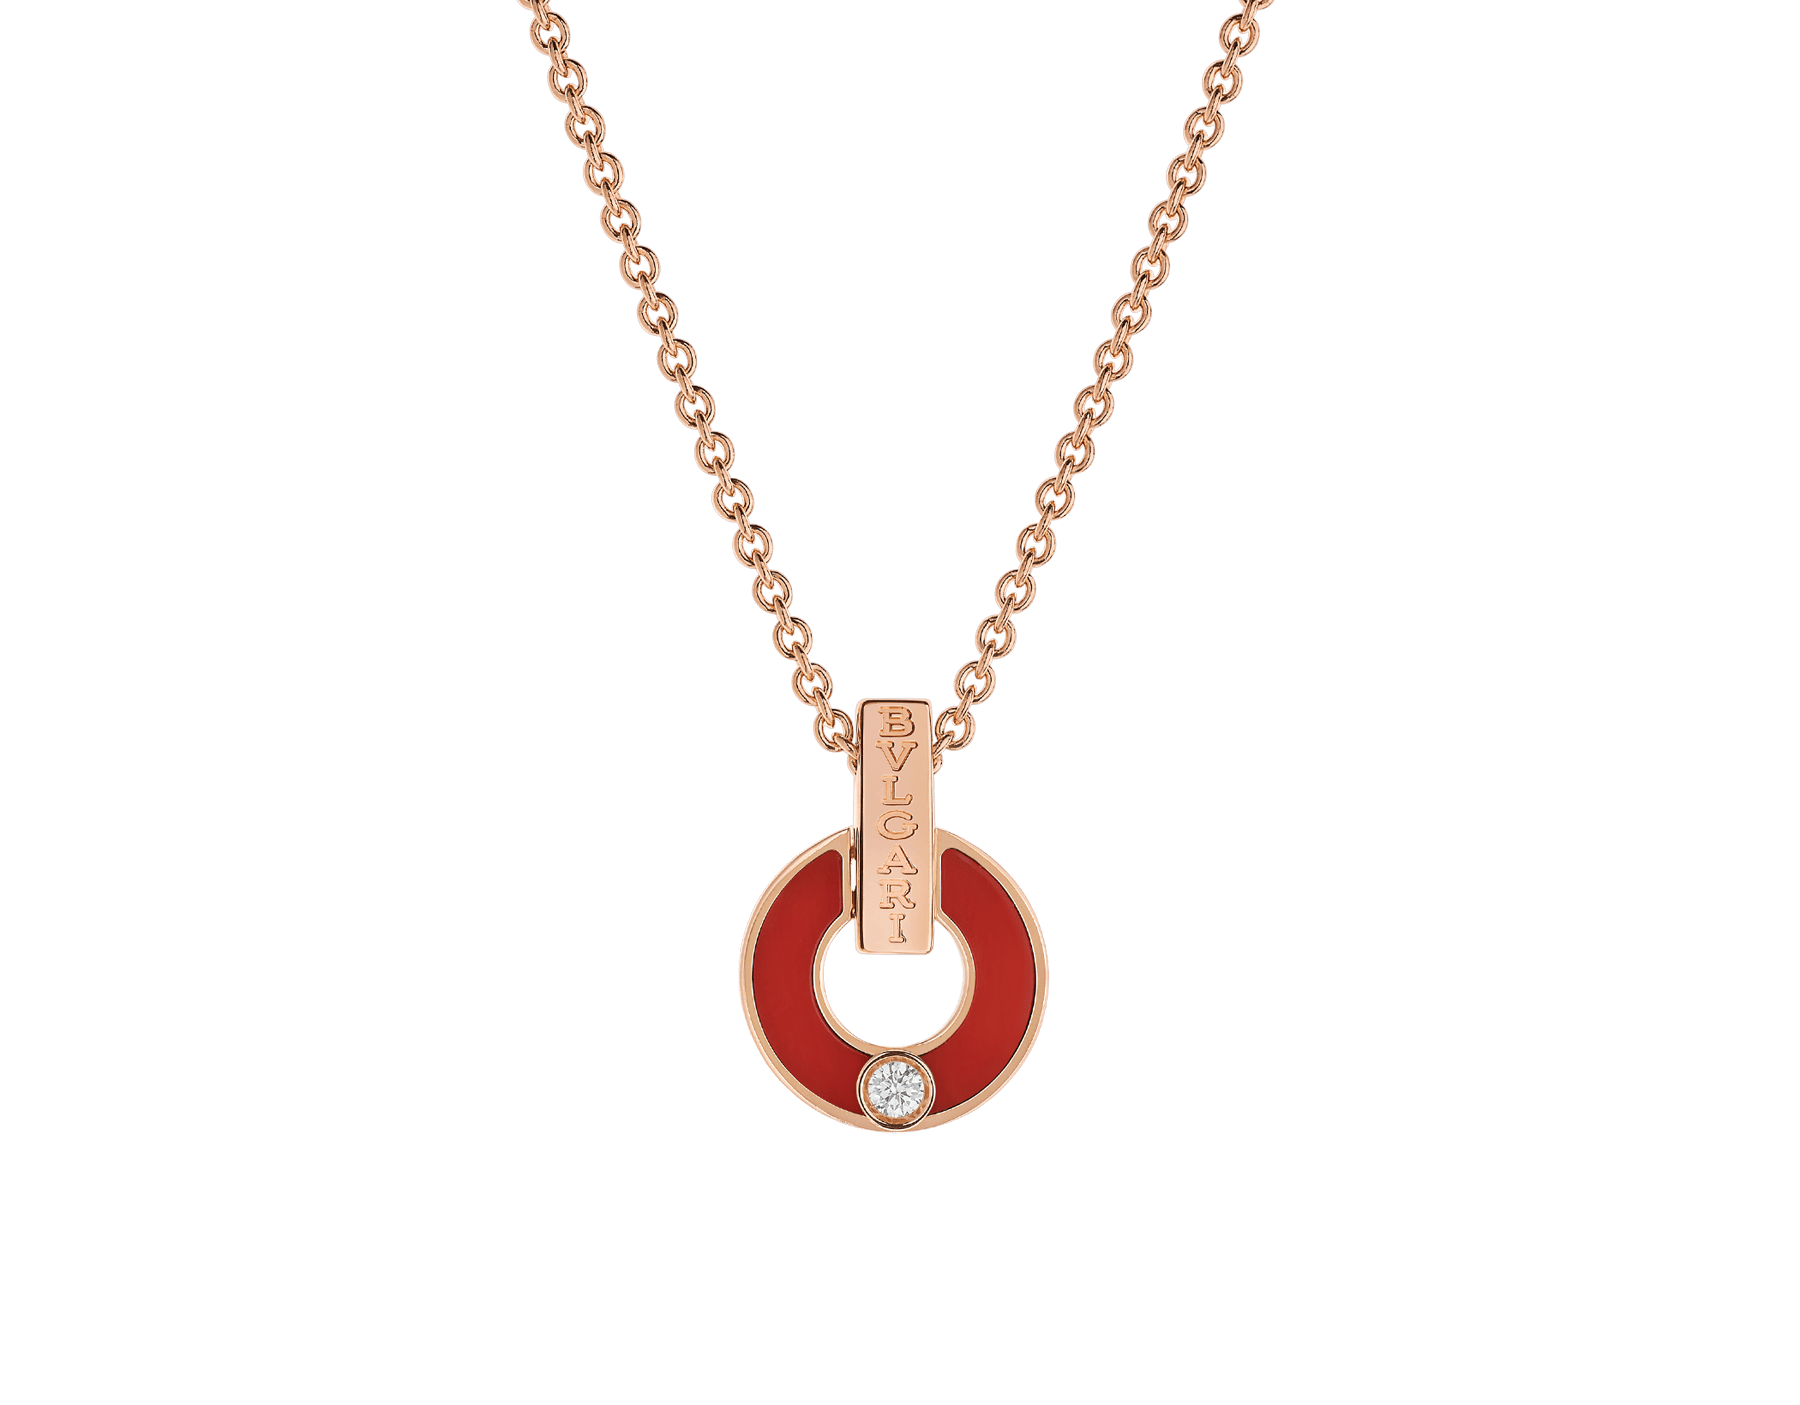 BVLGARI BVLGARI Openwork 18 kt yellow gold necklace set with coral elements and a round brilliant-cut diamond 357921 image 1